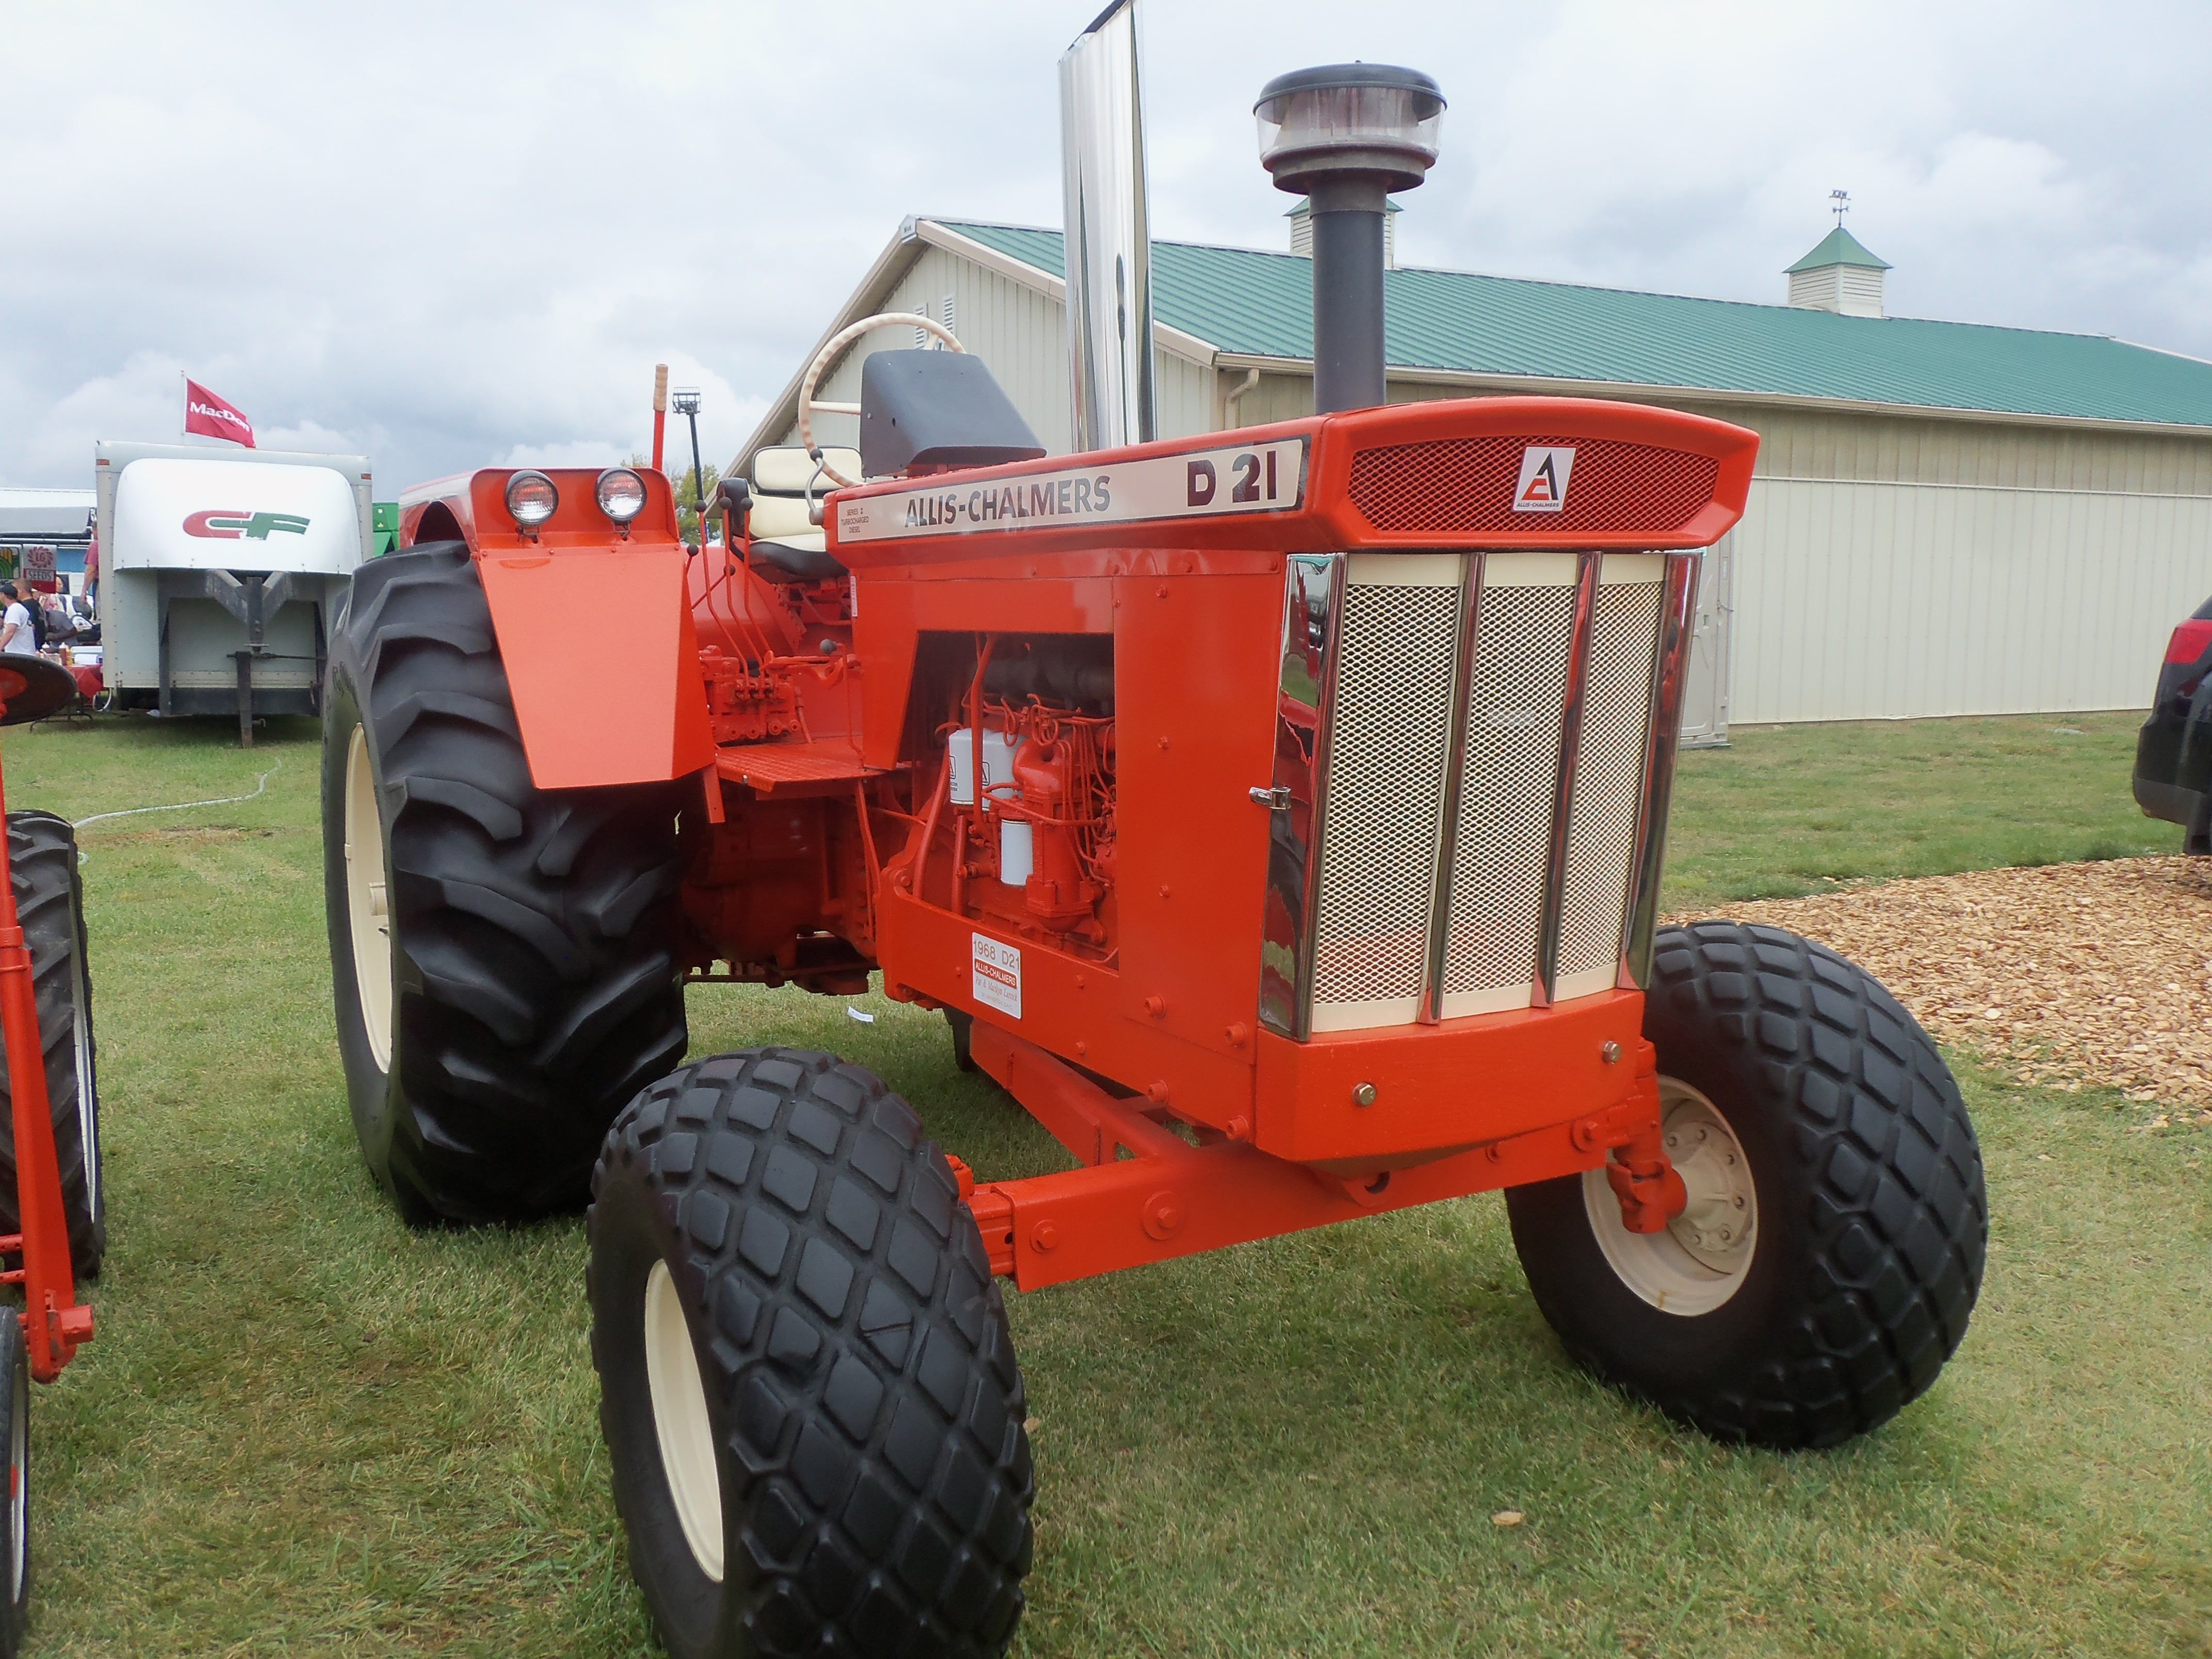 Allis Chalmers Ca Craigslist Related Keywords & Suggestions - Allis